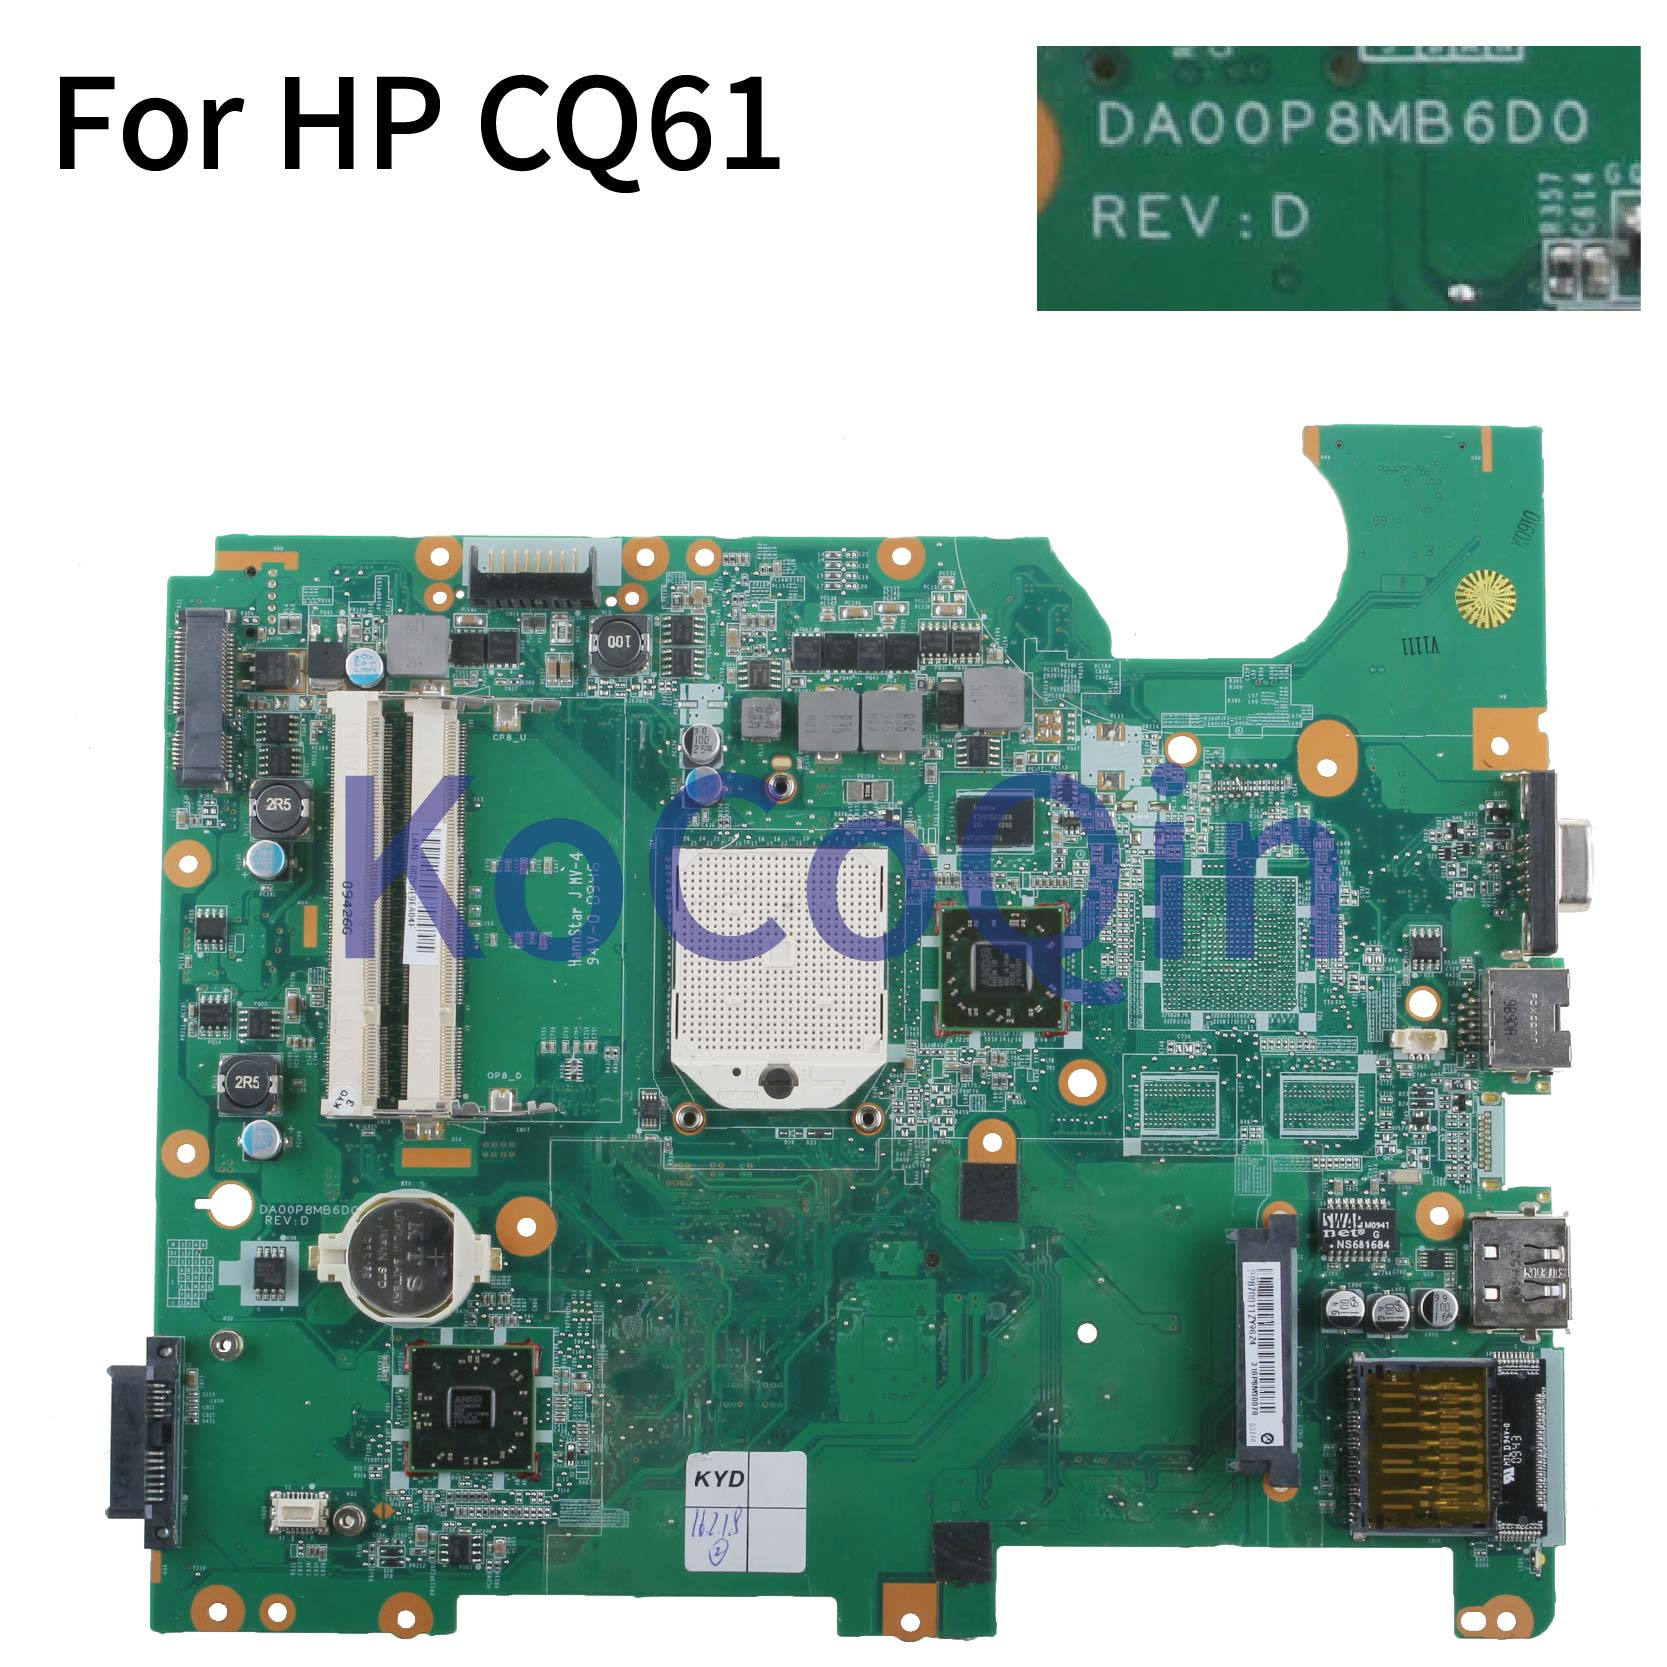 KoCoQin Laptop Motherboard For HP CQ61 Mainboard 577065-001 577065-501 DA00P8MB6D0